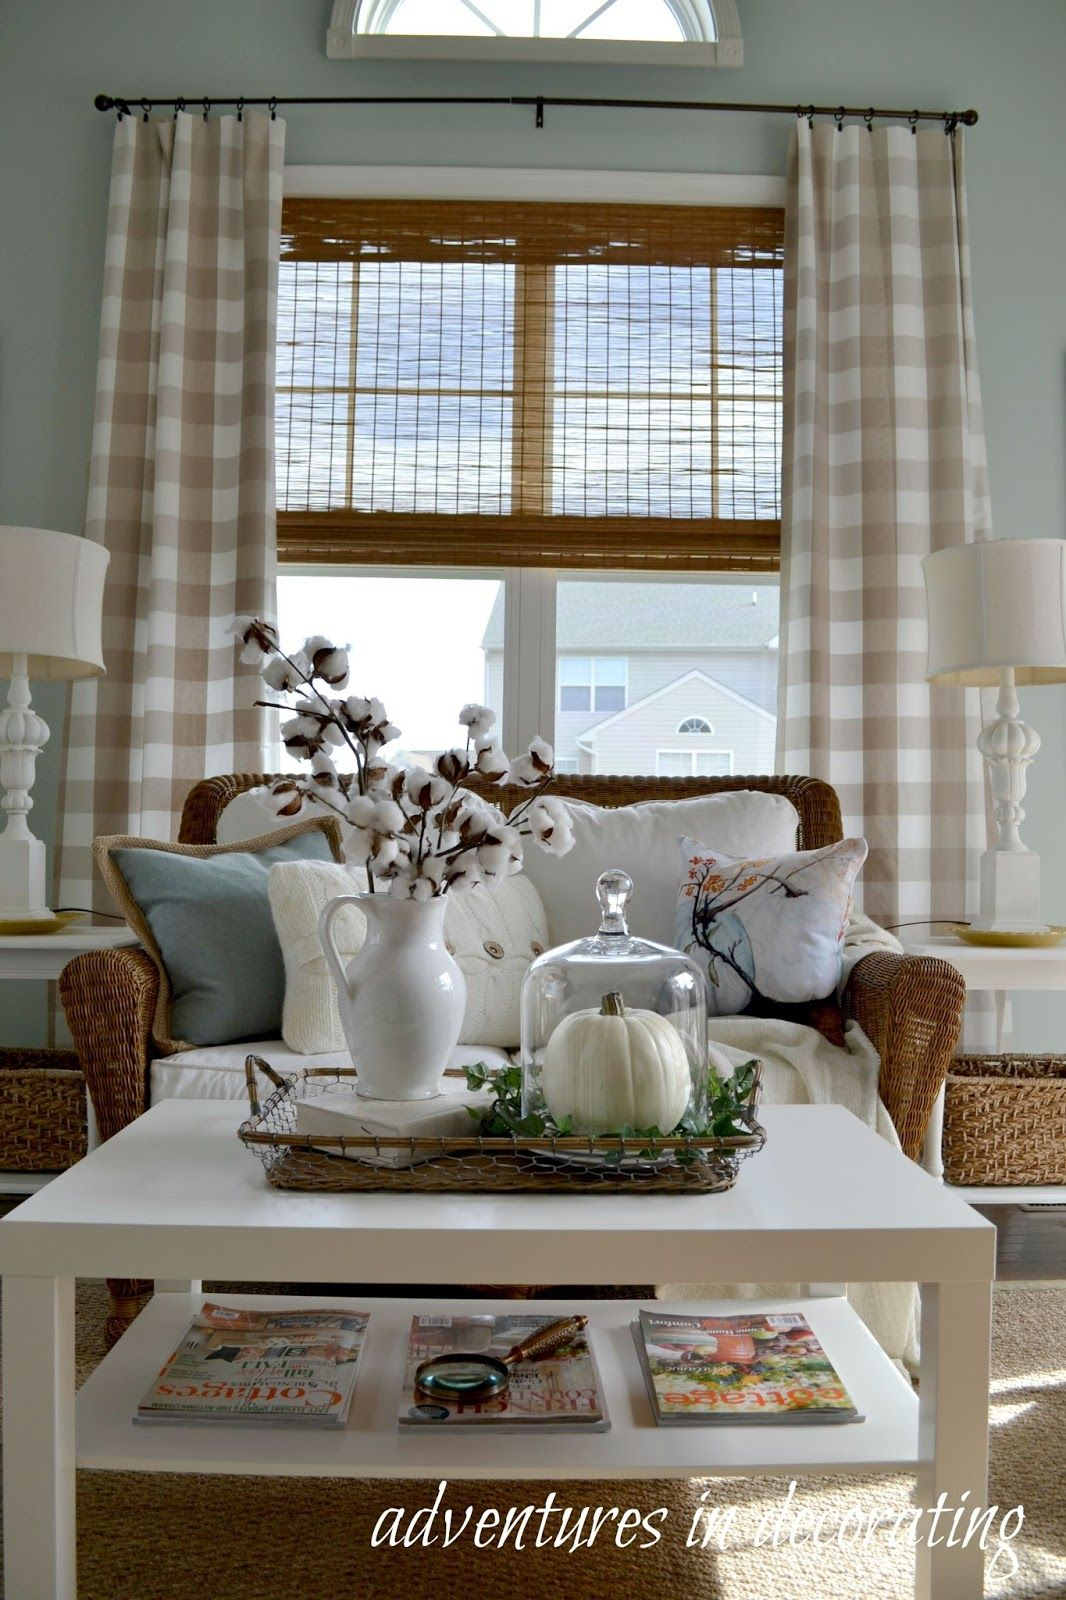 imgid check black and image kitchen styles curtain shocking uncategorized incredible trends white checkered of curtains